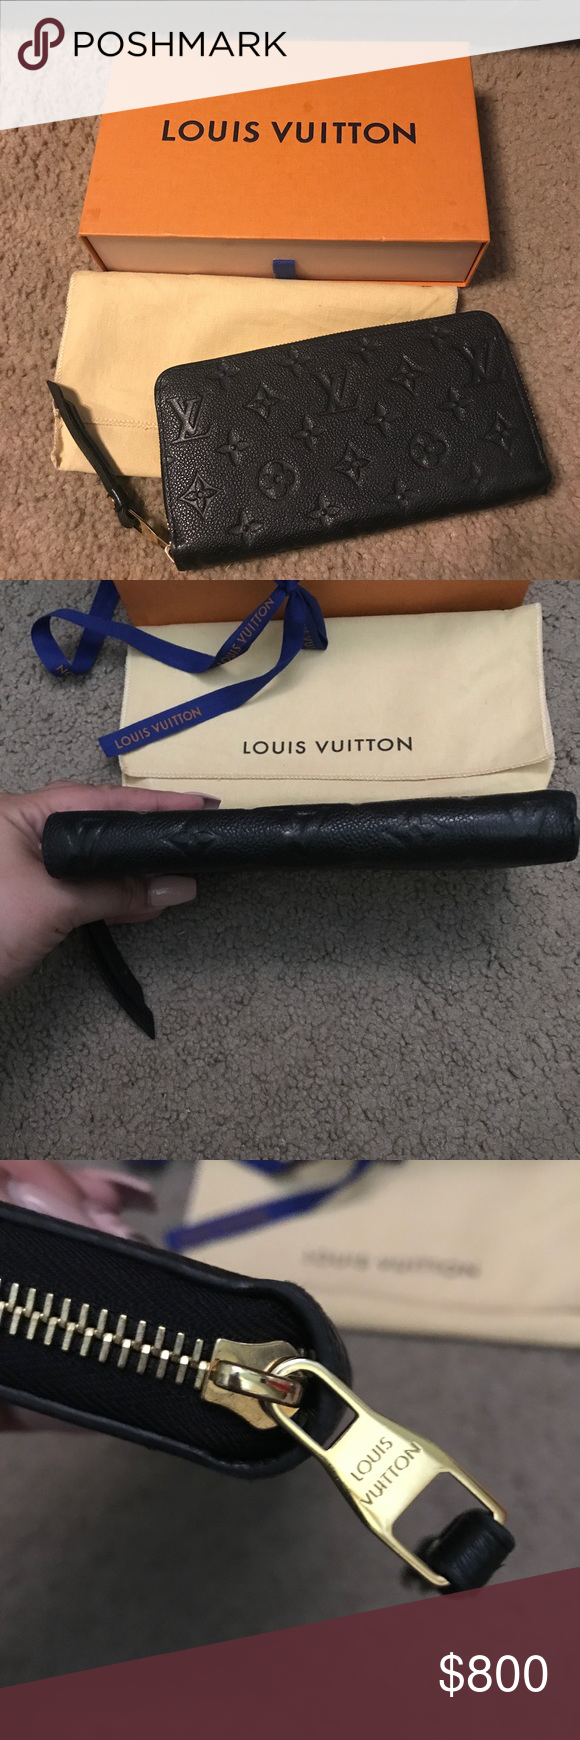 Louis Vuitton Empriente Noir Zippy Wallet Louis Vuitton Empriente Noir Zippy Wallet Preloved Still looks beautiful Light wear Small tear on the inside (not noticeable & does not affect using it)  Zips smoothly  No tarnish on the hard ware  Retail: $1050 + tax Comes with box, dust bag, and ribbon  Date Code: SP2106 100% Authentic  Can take less with other payment options. Will trade for LV items ONLY! Louis Vuitton Bags Wallets